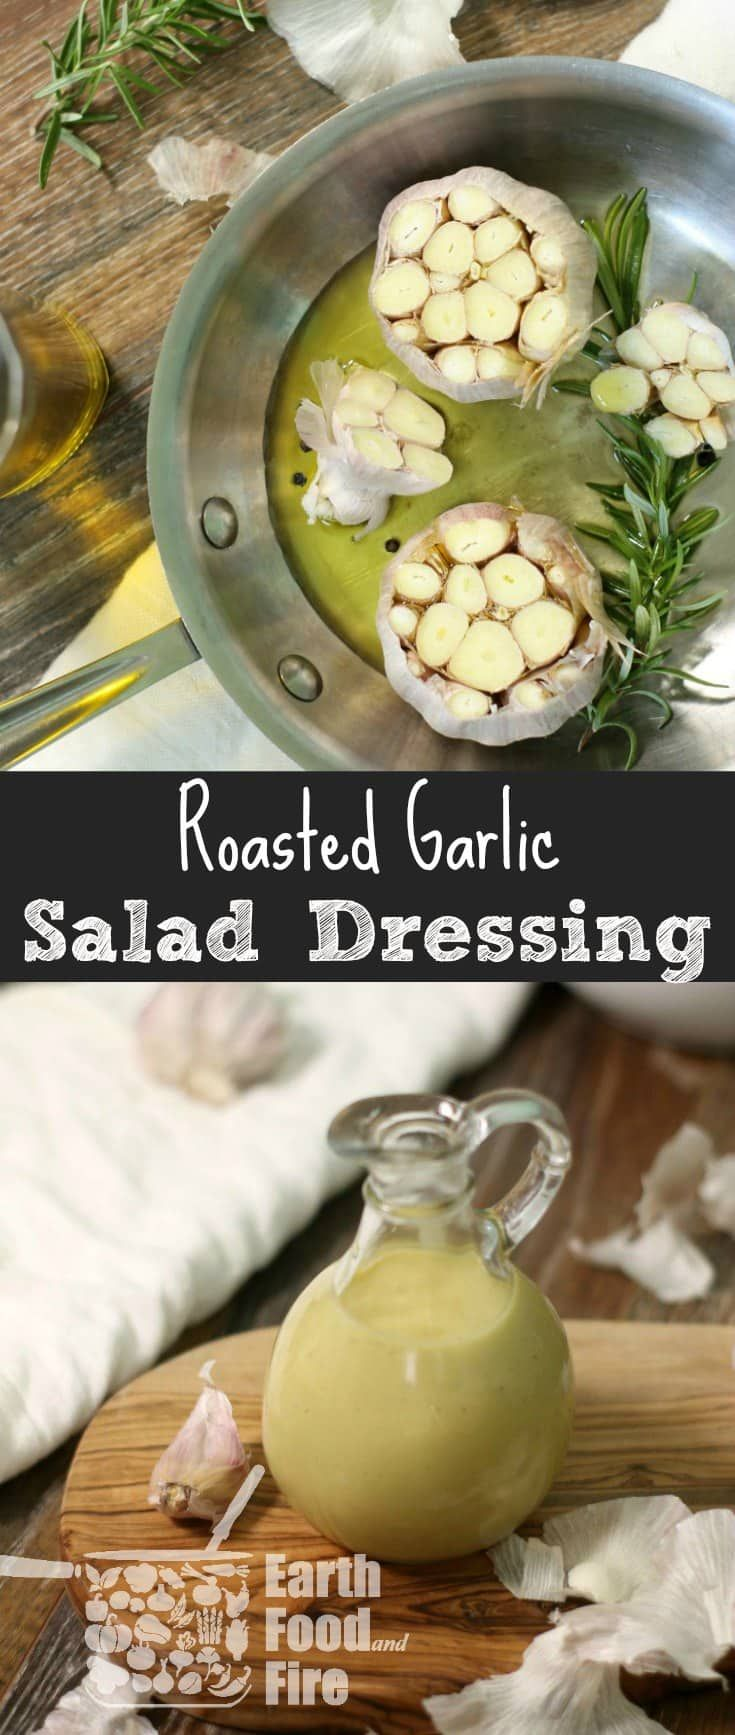 This easy to make creamy roasted garlic salad dressing will instantly become your new favorite vinaigrette. Ideal for a wide range of salads, this gluten free dressing can be used as a base for many other dressings as well! via @earthfoodfire